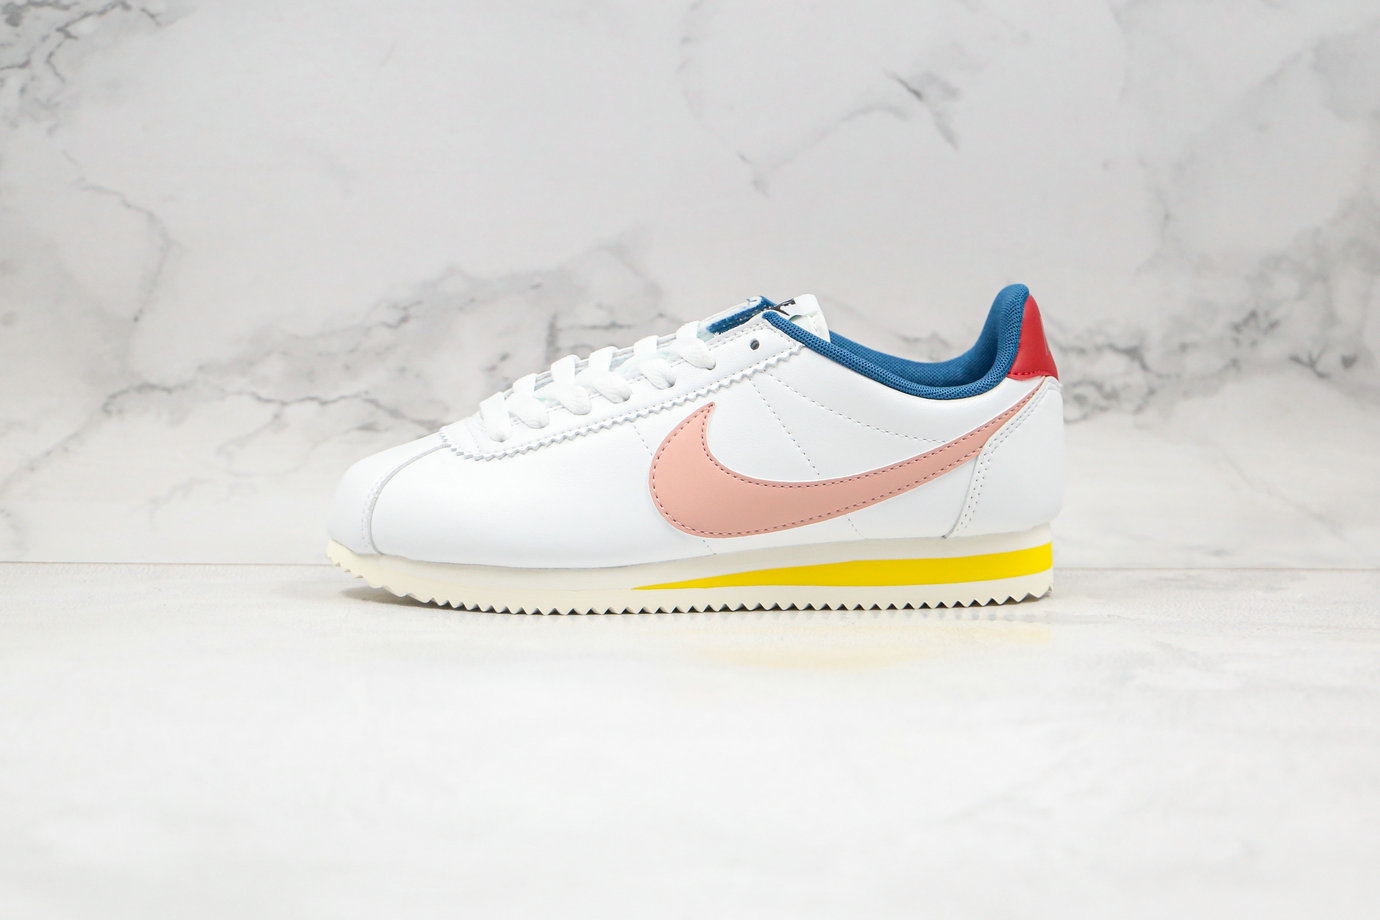 2020 Womens Cheapest Nike Classic Cortez Leather Summit White Coral Stardust 807471-114